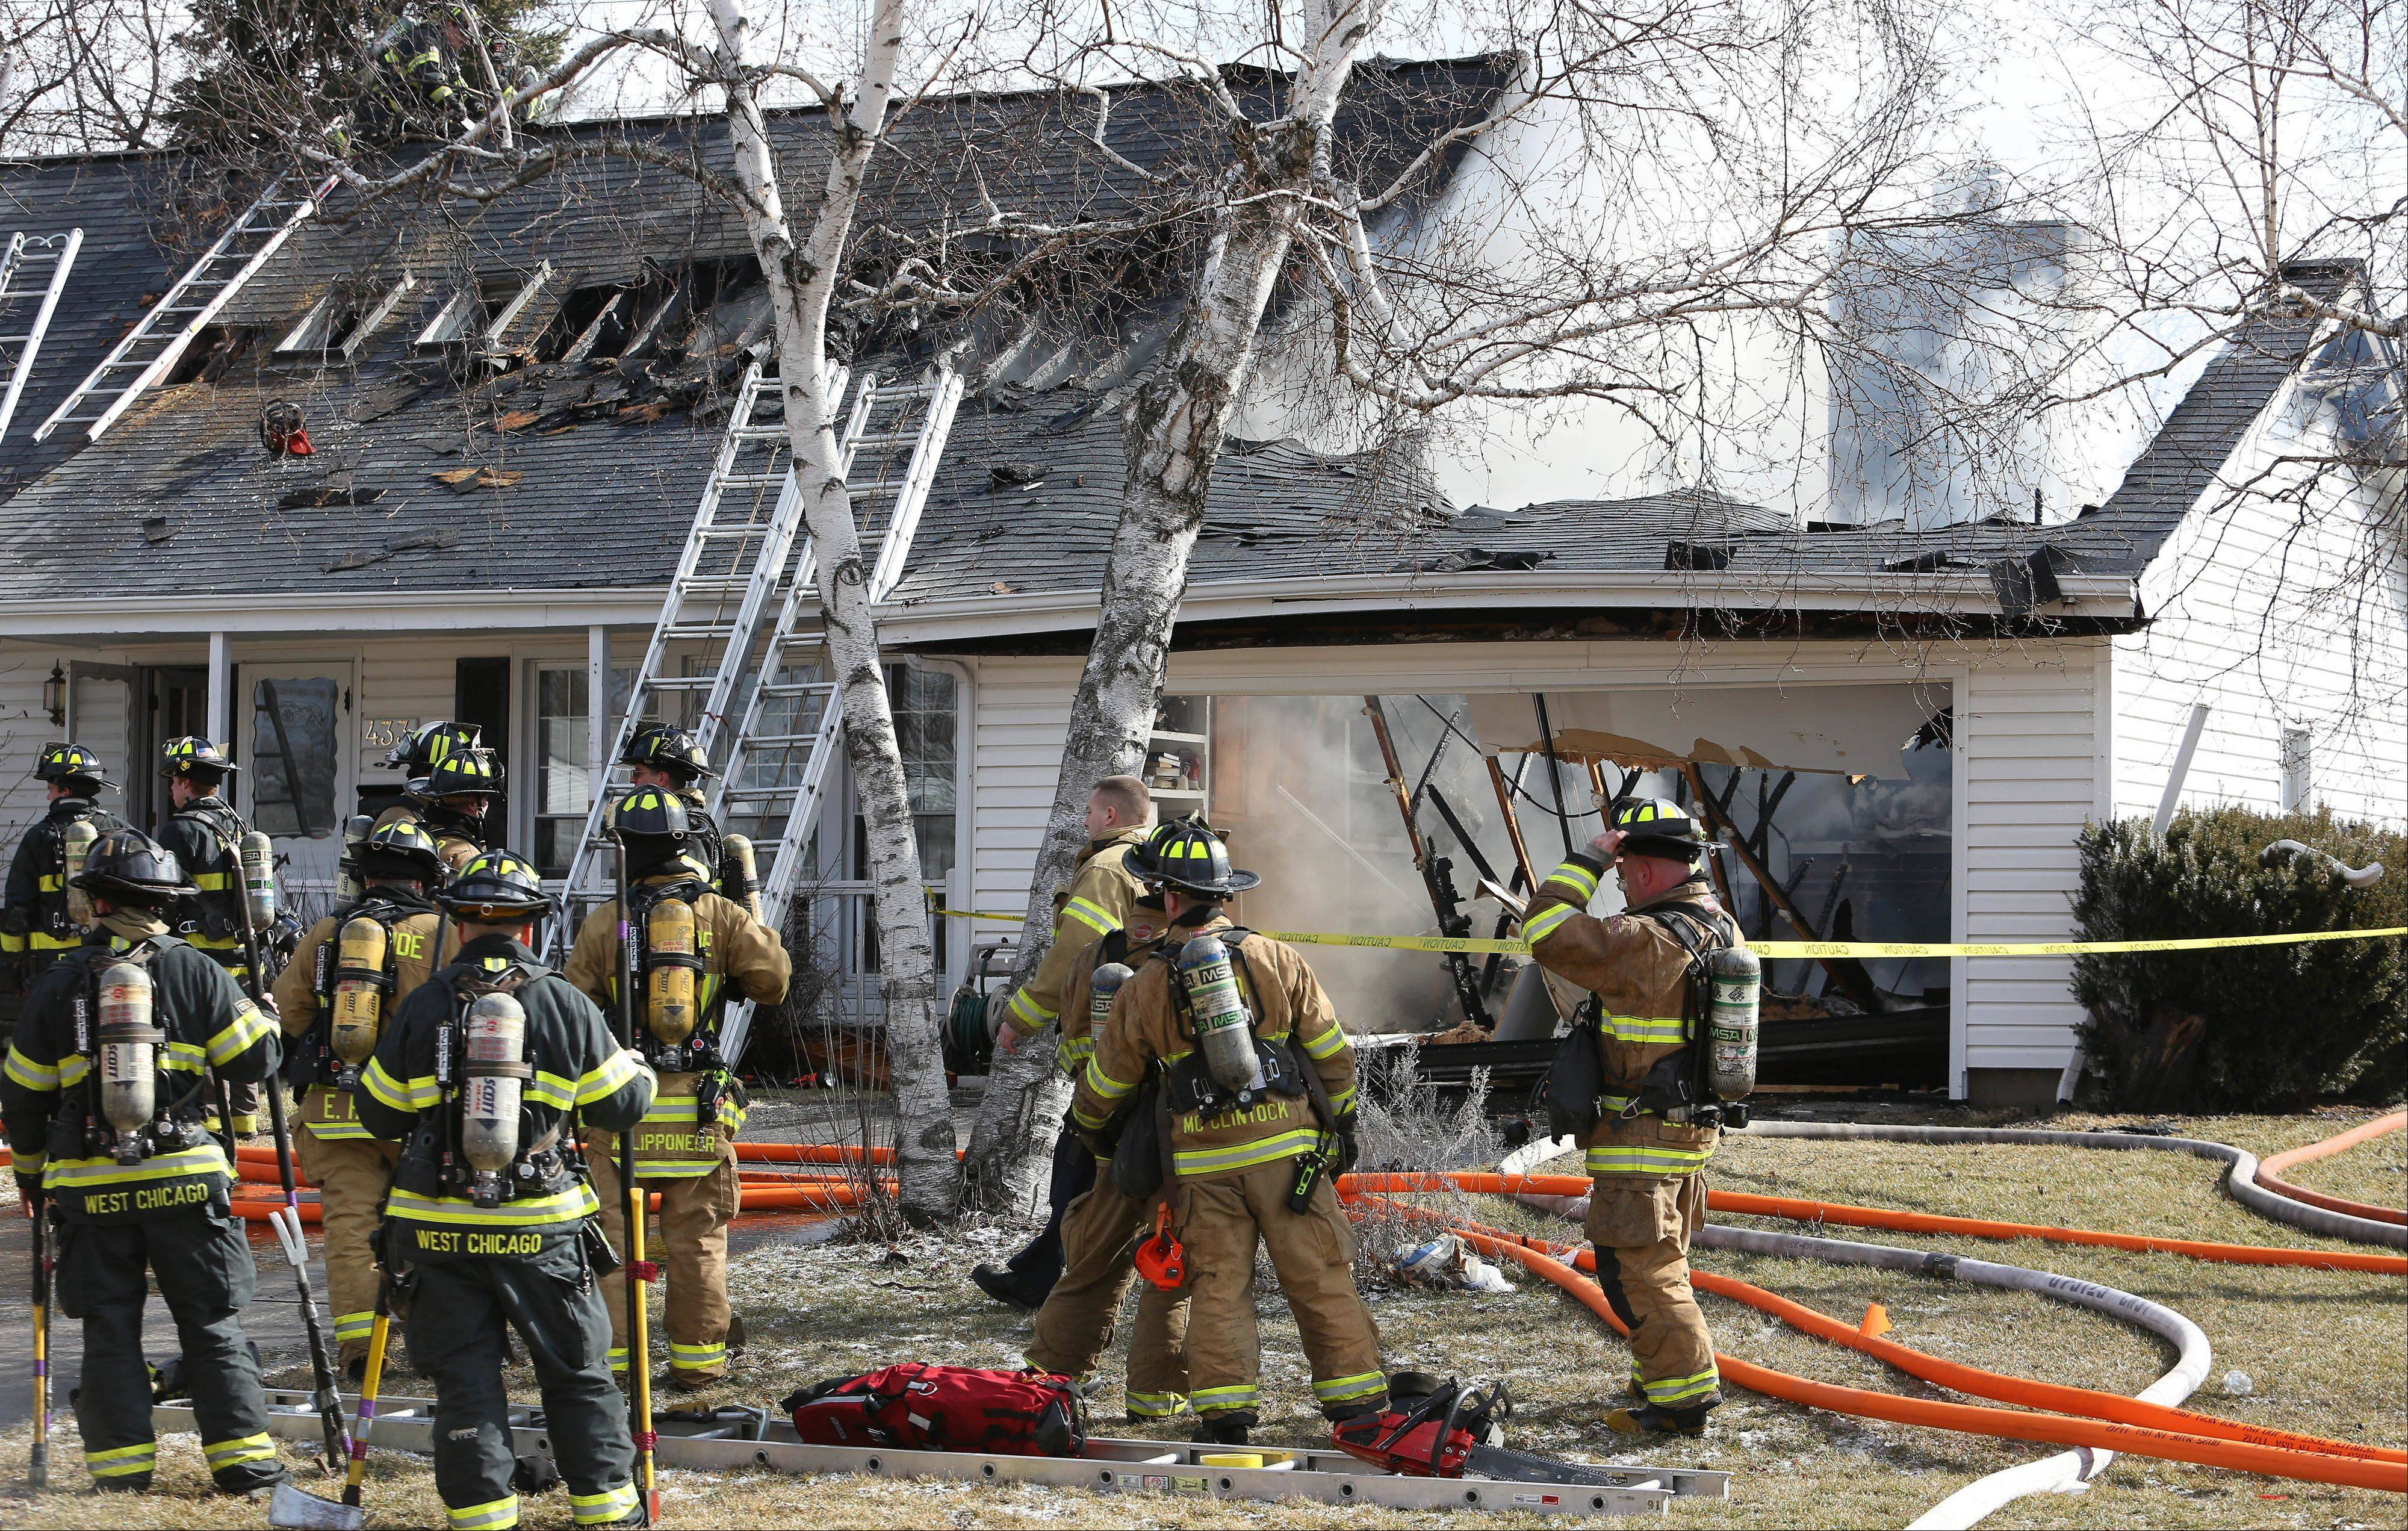 Carol Stream firefighters were assisted by crews from several nearby towns Wednesday as they battled a house fire on the 400 block of N. Blackhawk Drive.